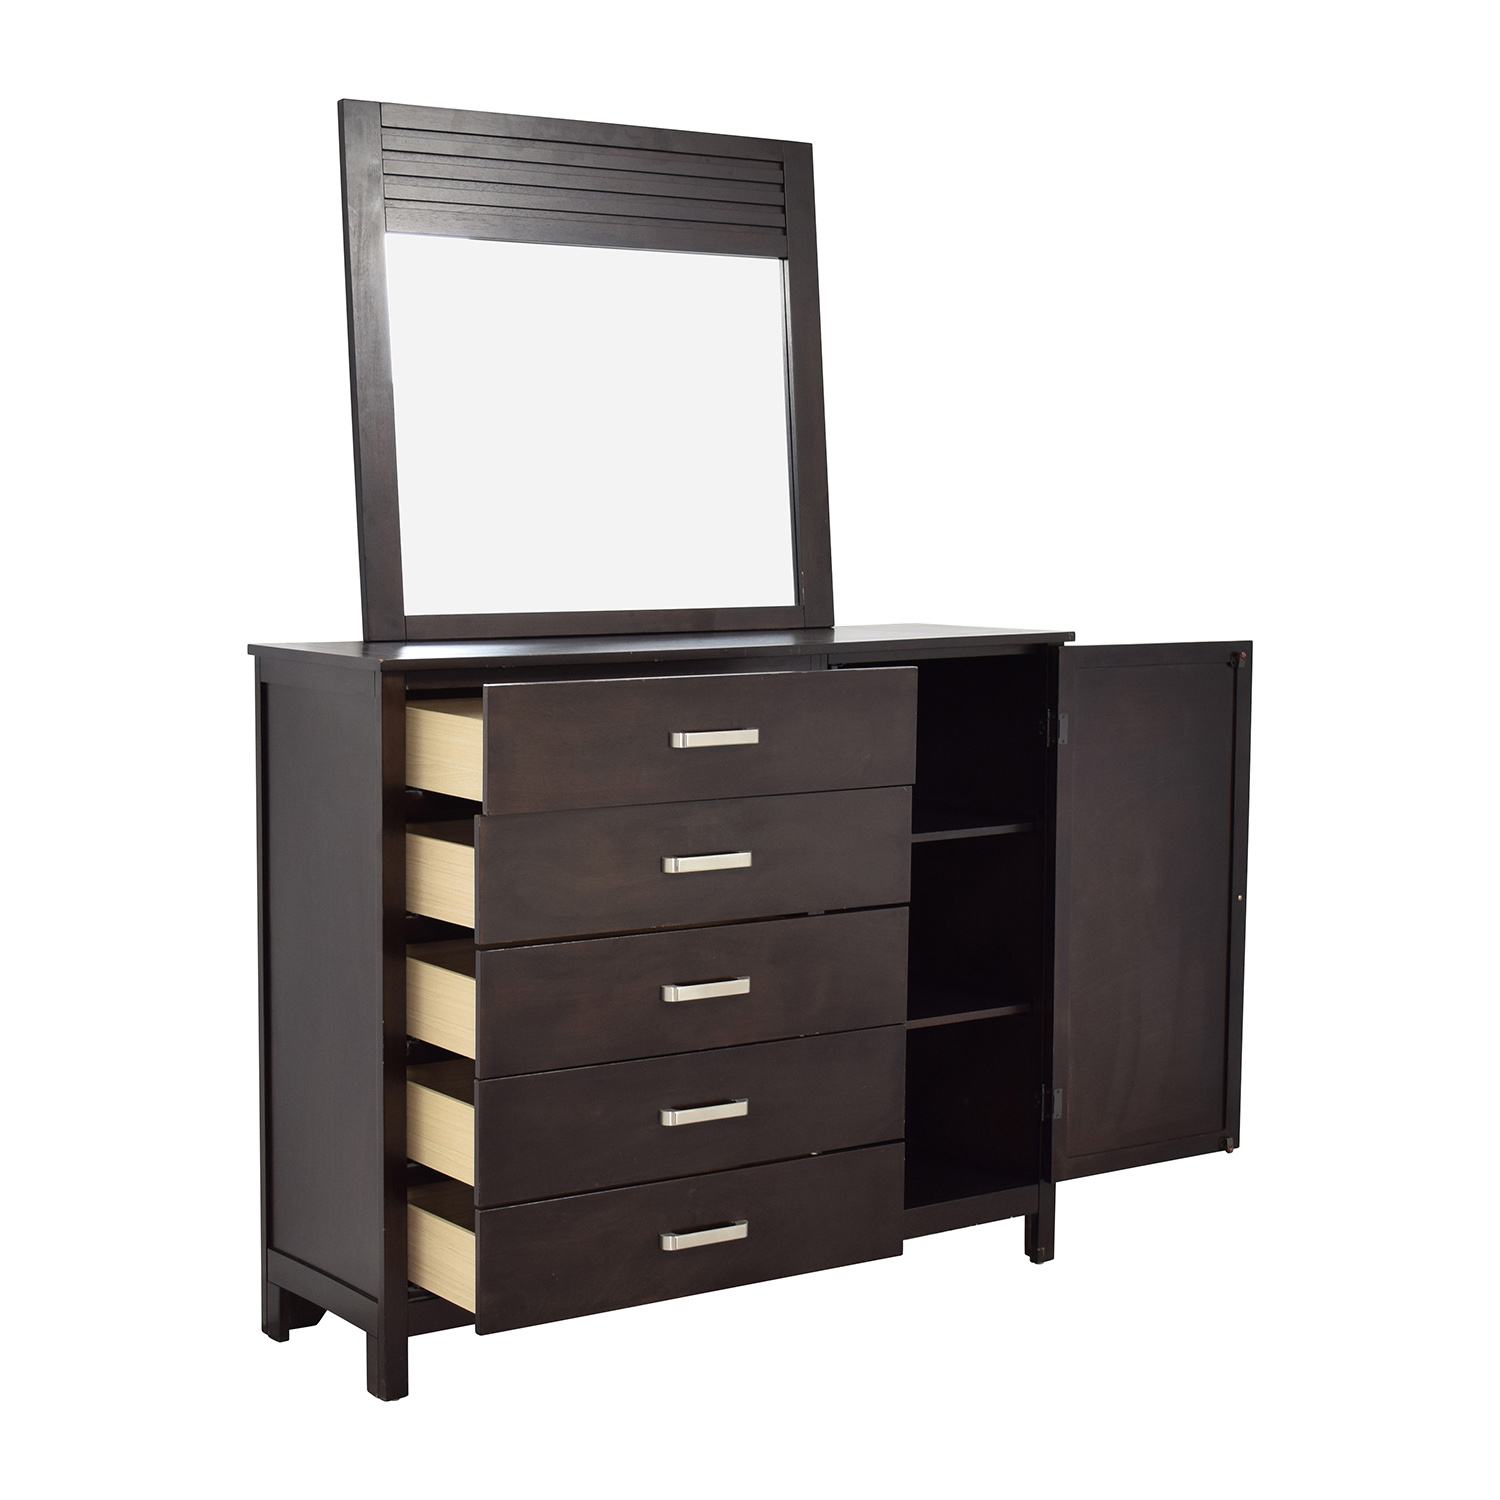 Rooms To Go Rooms to Go Espresso Grove Five-Drawer Dresser with Mirror on sale